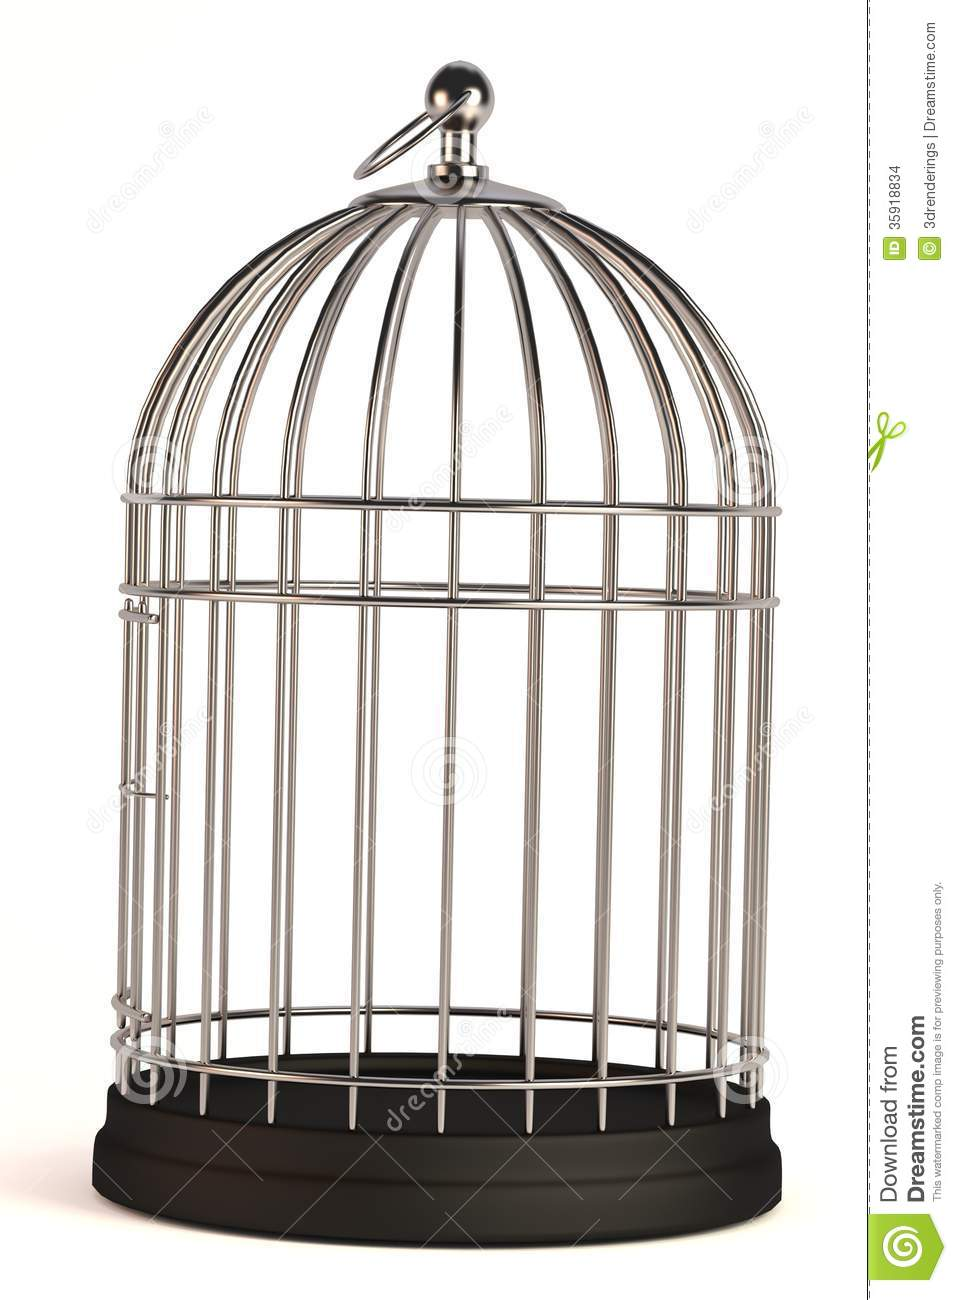 cat cage clipart - photo #31